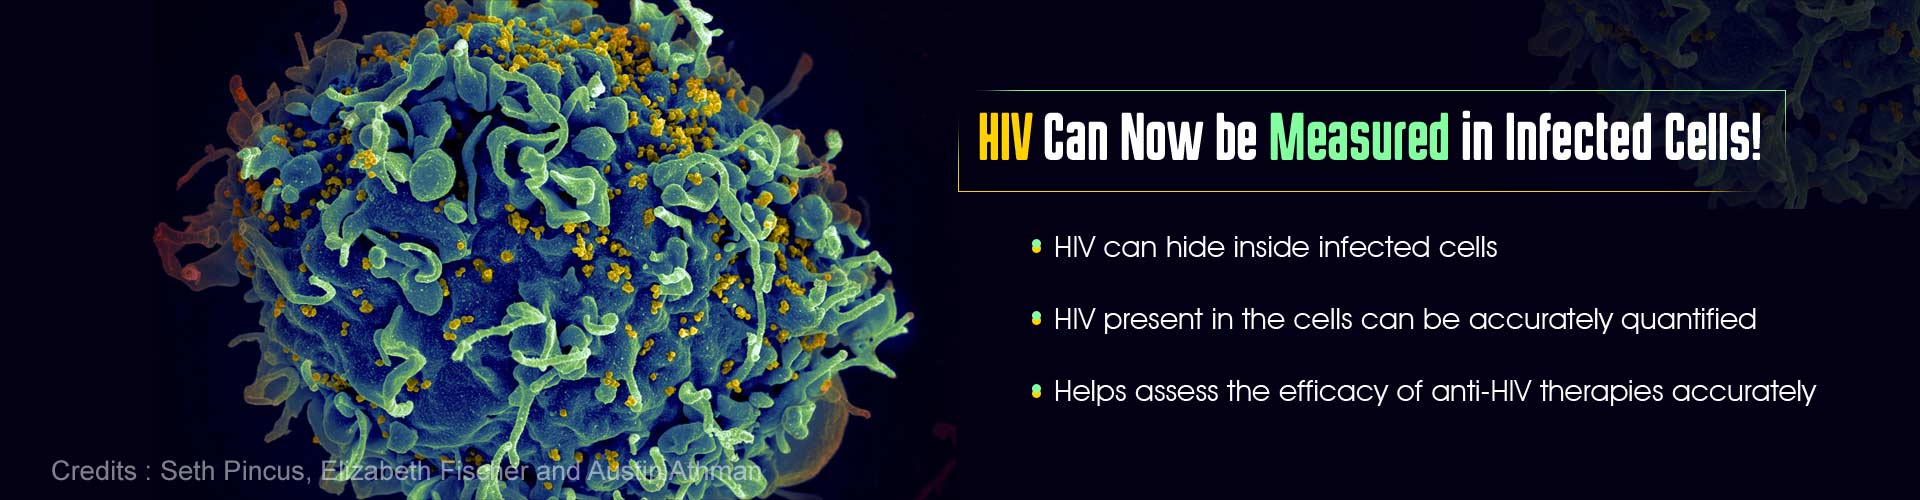 HIV can now be measured in infected cells. HIV can hide inside infected cells. HIV present in the cells can be accurately quantified. Helps assess the efficacy of anti-HIV therapies accurately.